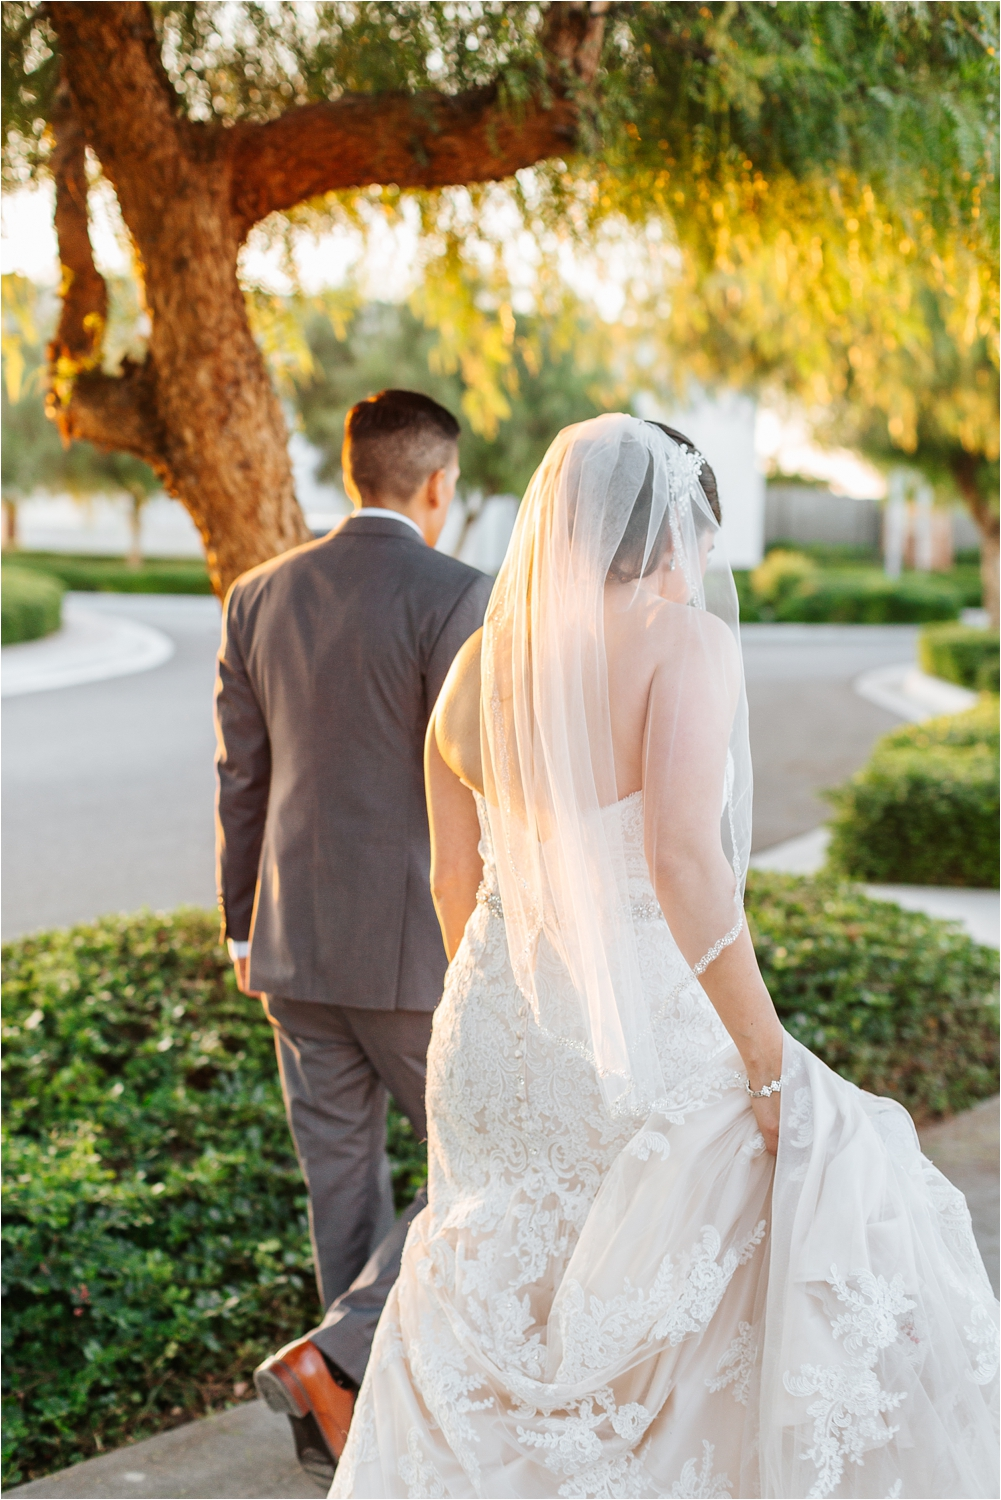 Walking at sunset - bride and groom pictures - https://brittneyhannonphotography.com